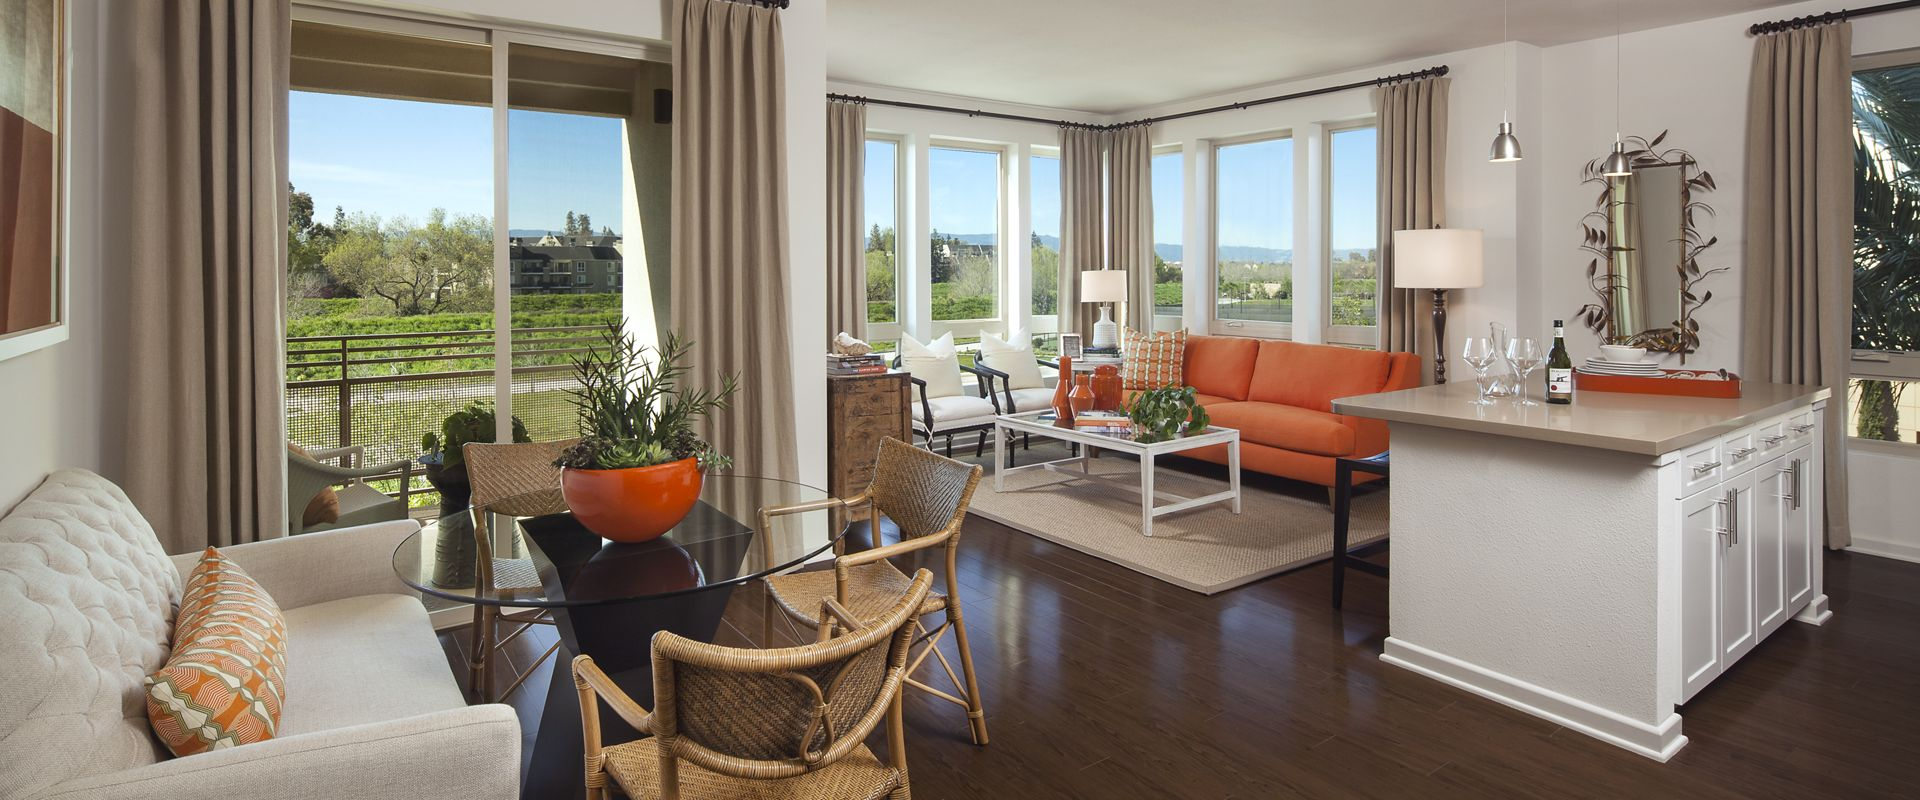 Interior view of living room and dining room at River View Apartment Homes in San Jose, CA.